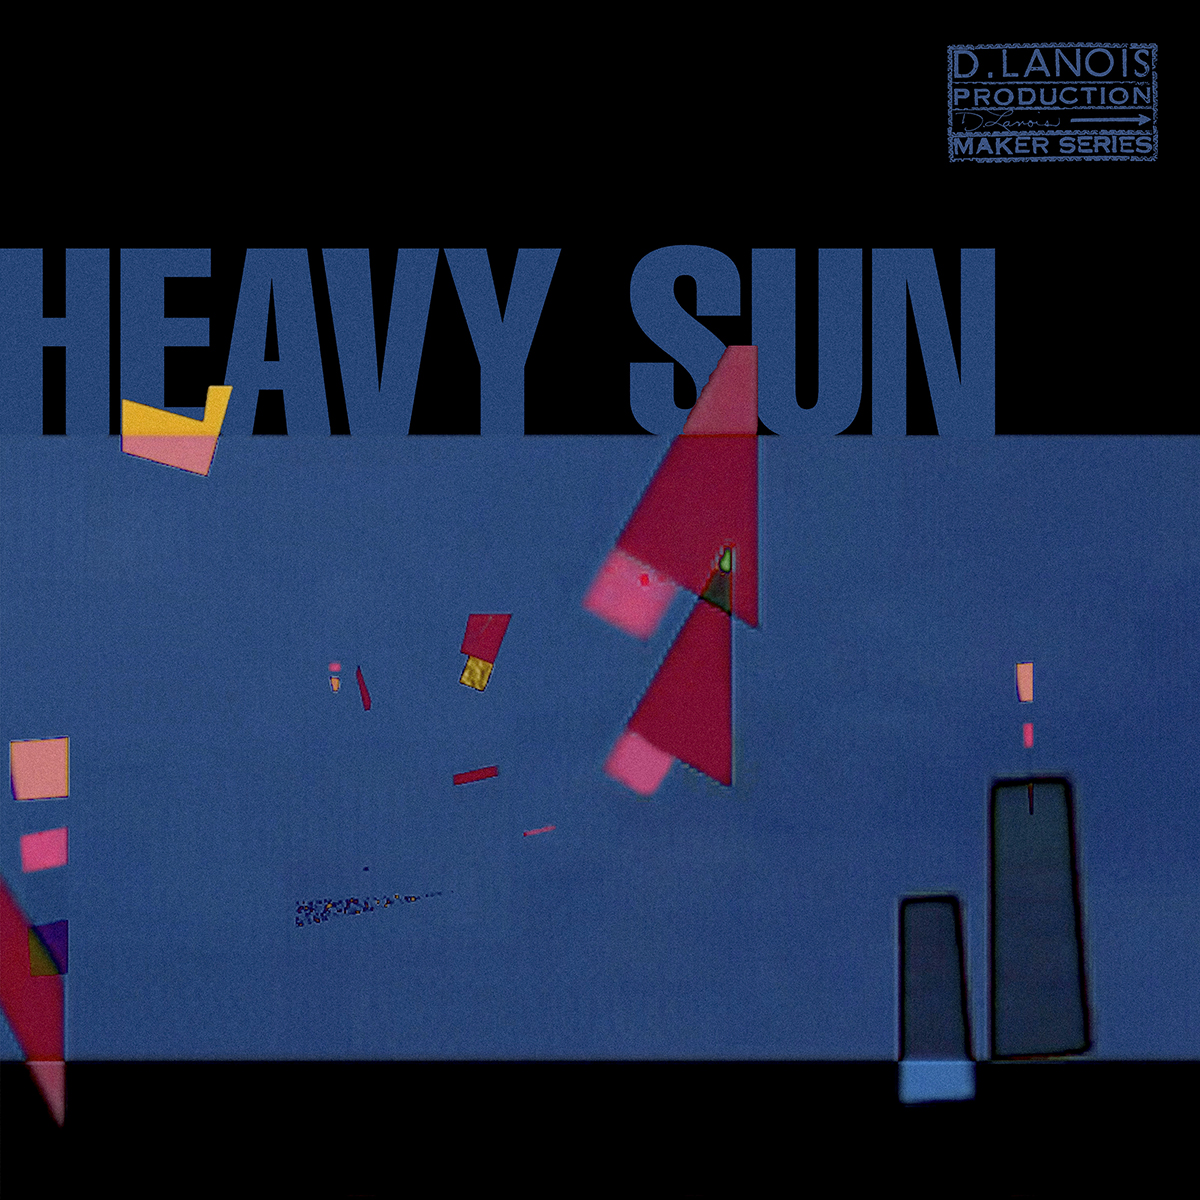 Grammy and JunoWinning Songwriter and Producer Daniel Lanois Releases Heavy Sun